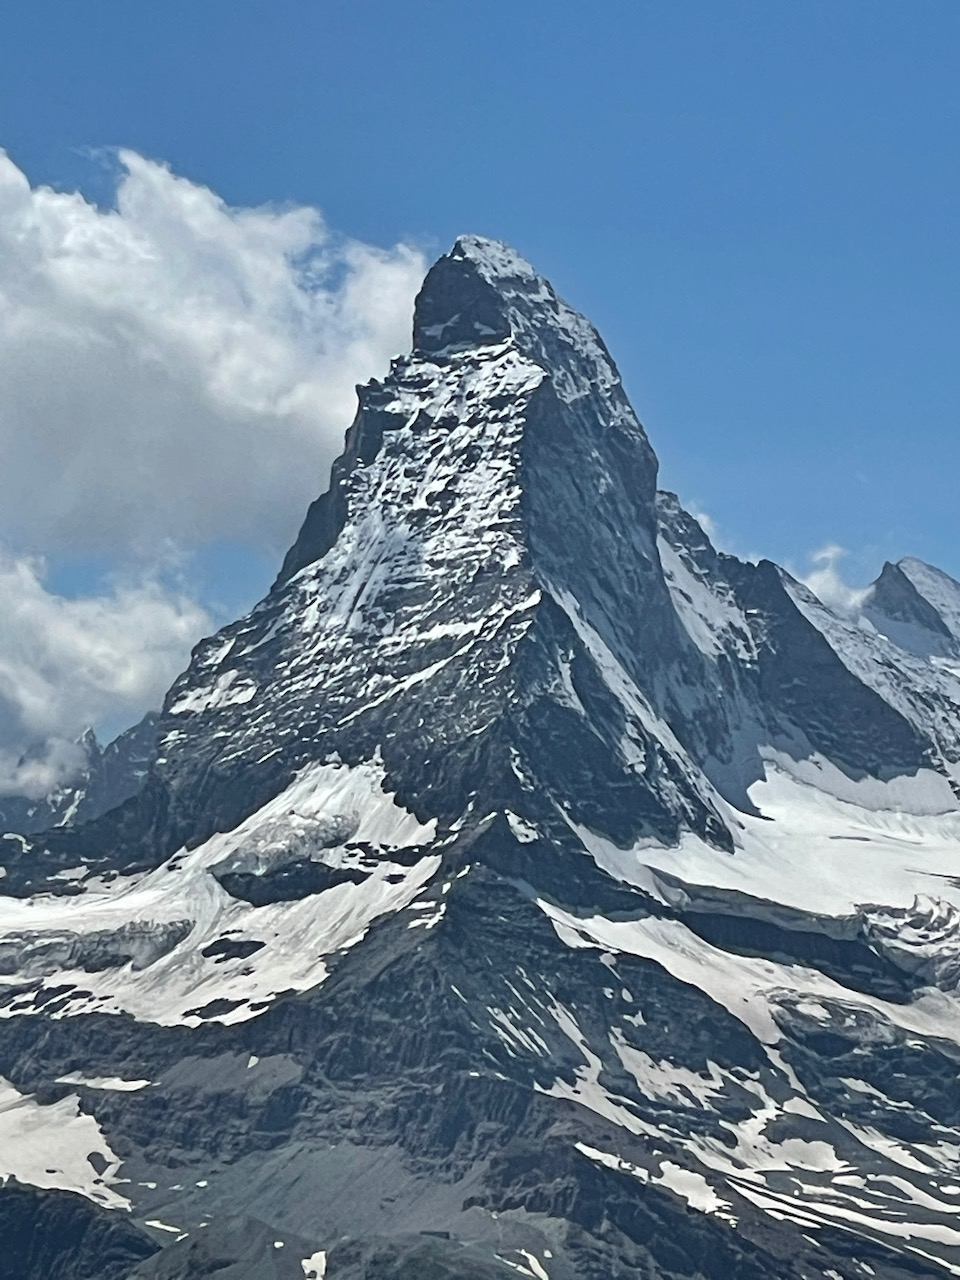 At the top of the Gornergrat looking at the Matterhorn